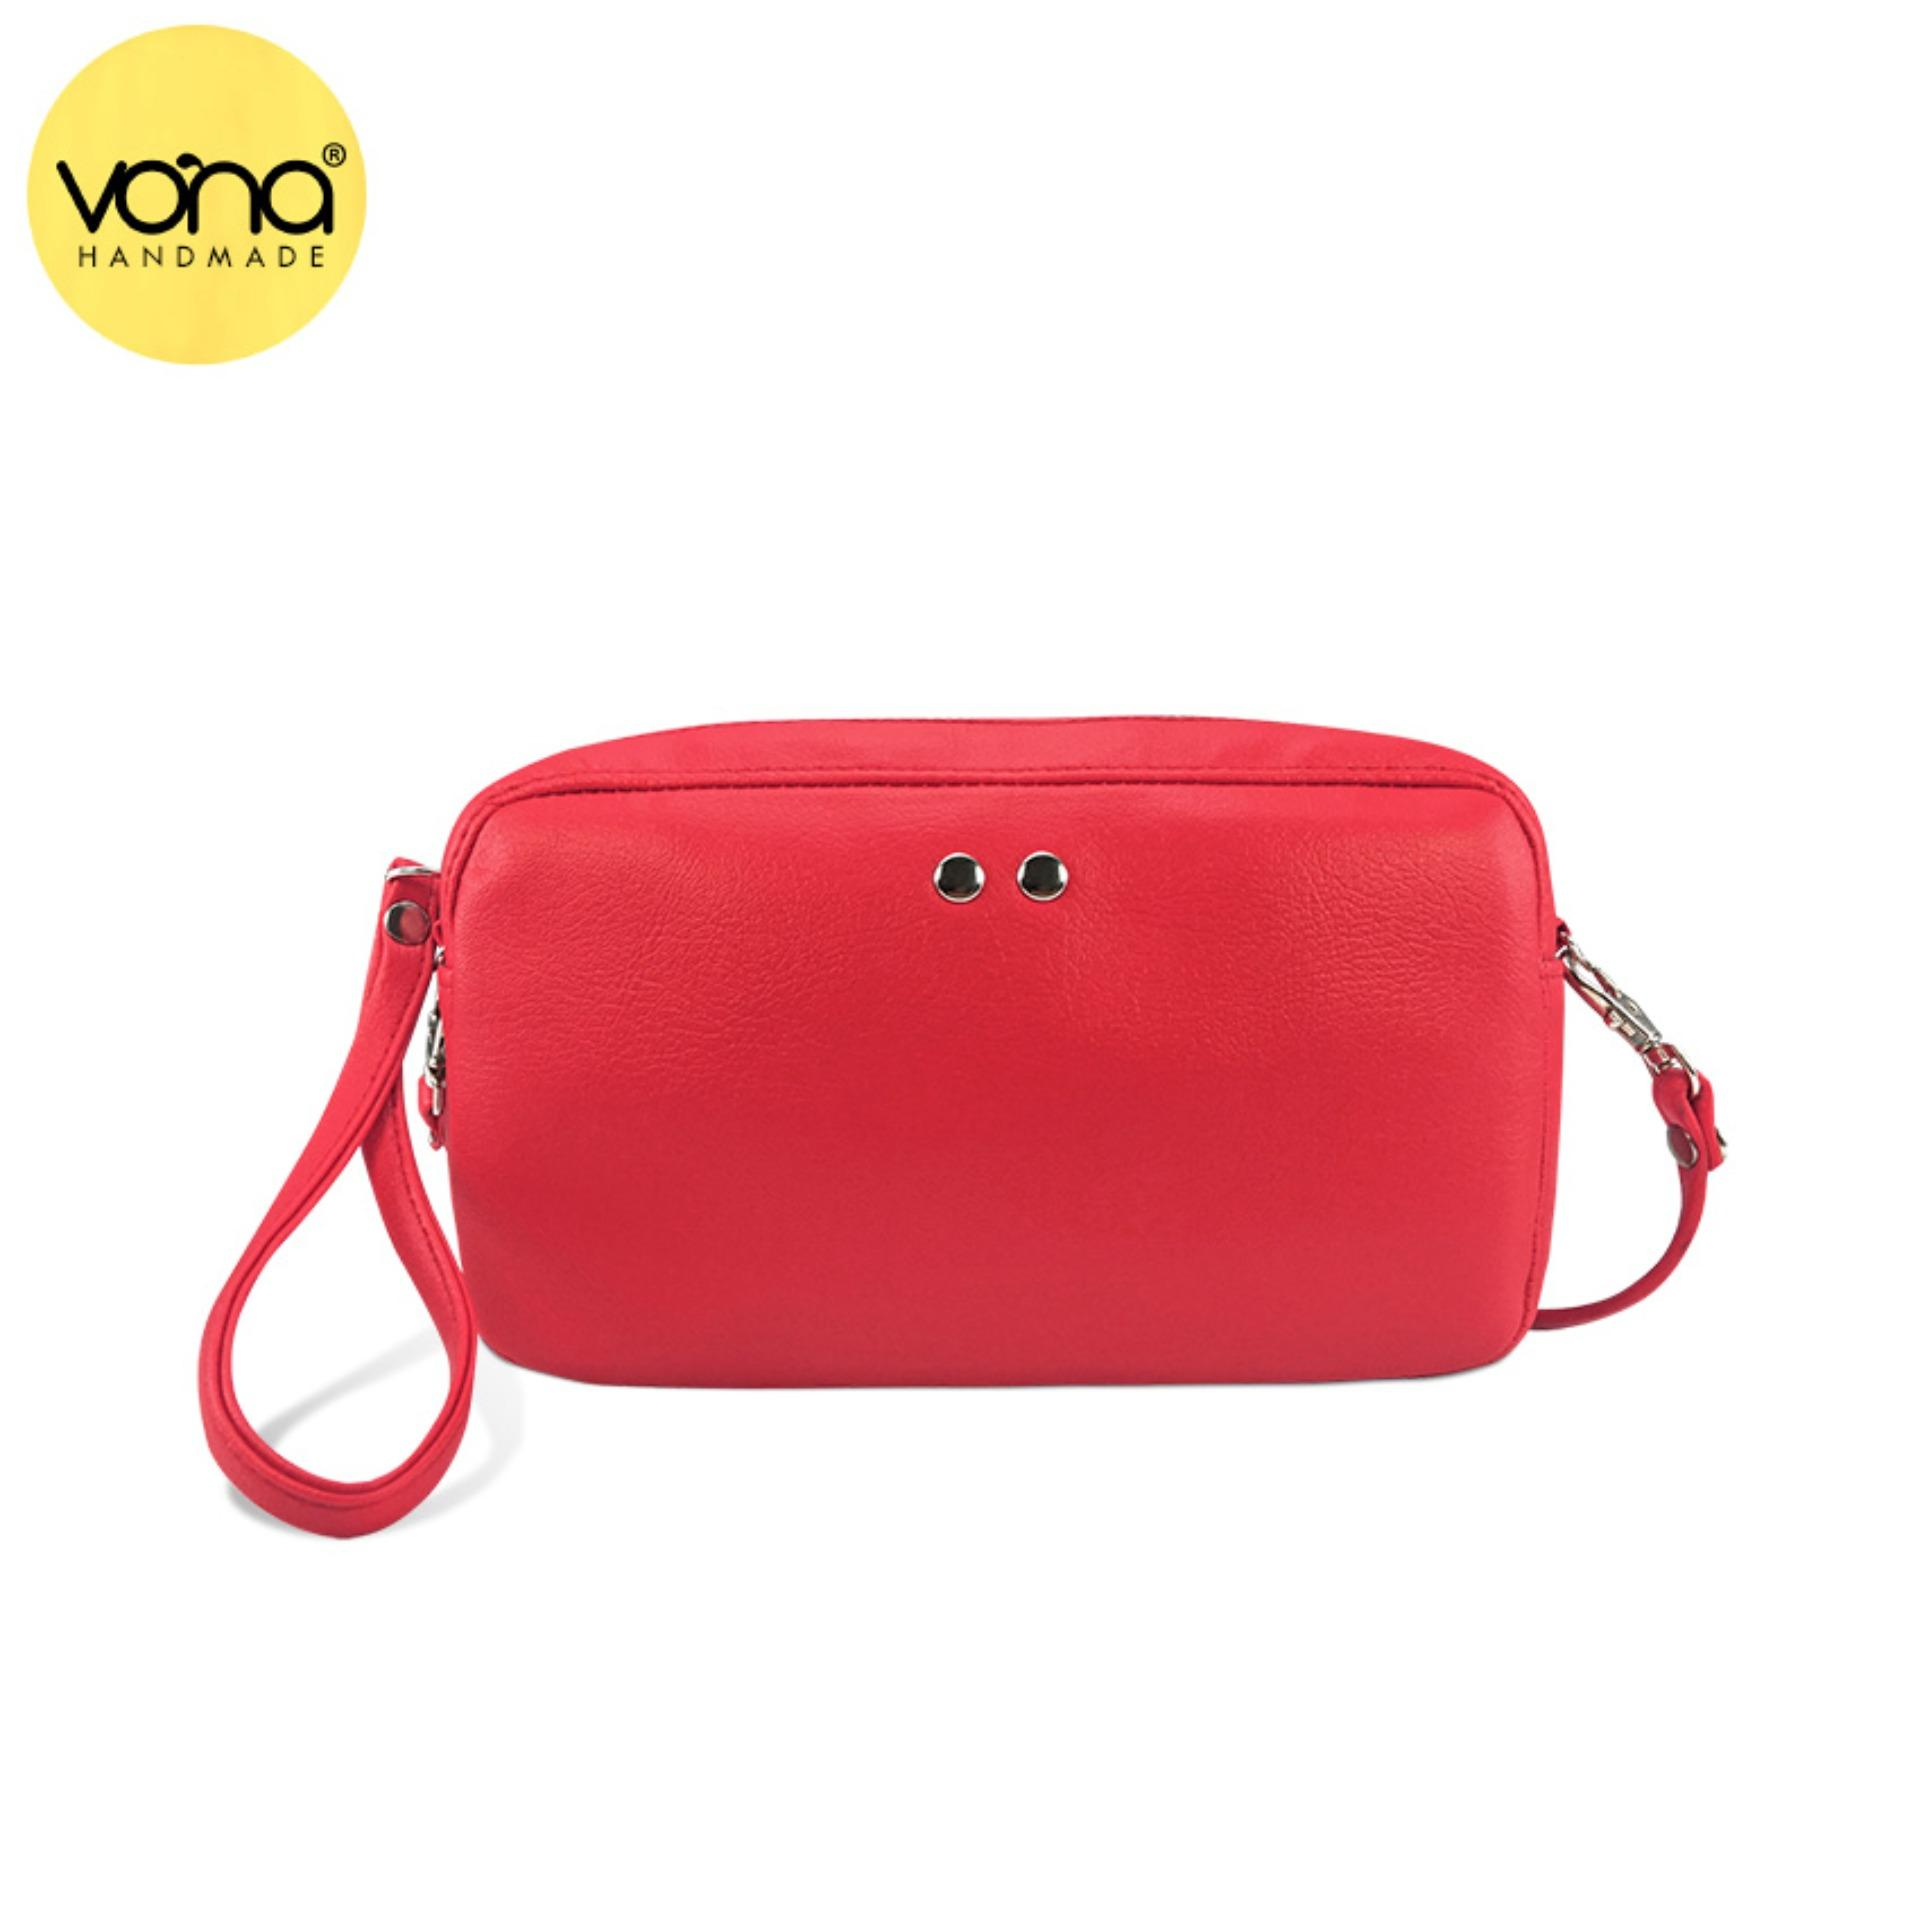 Beli Vona Hopp Clutch Merah Clutch Sling Bag Mini Tas Selempang Bahu Ladies Pu Leather Terbaru